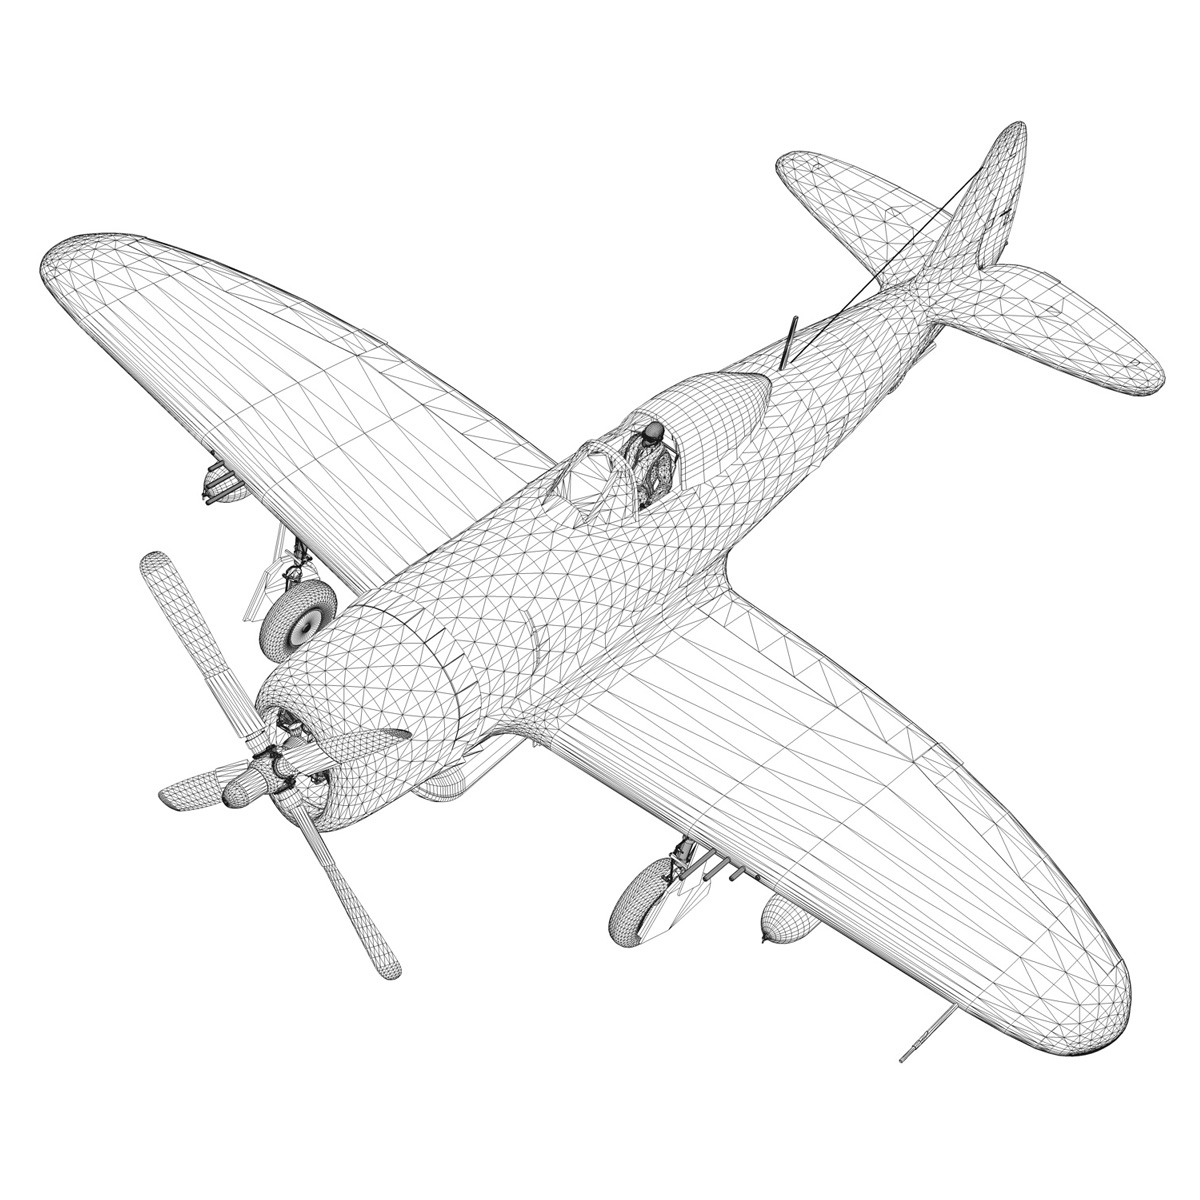 Republic P-47D Thunderbolt - Rozzie Geth II 3d model  279788